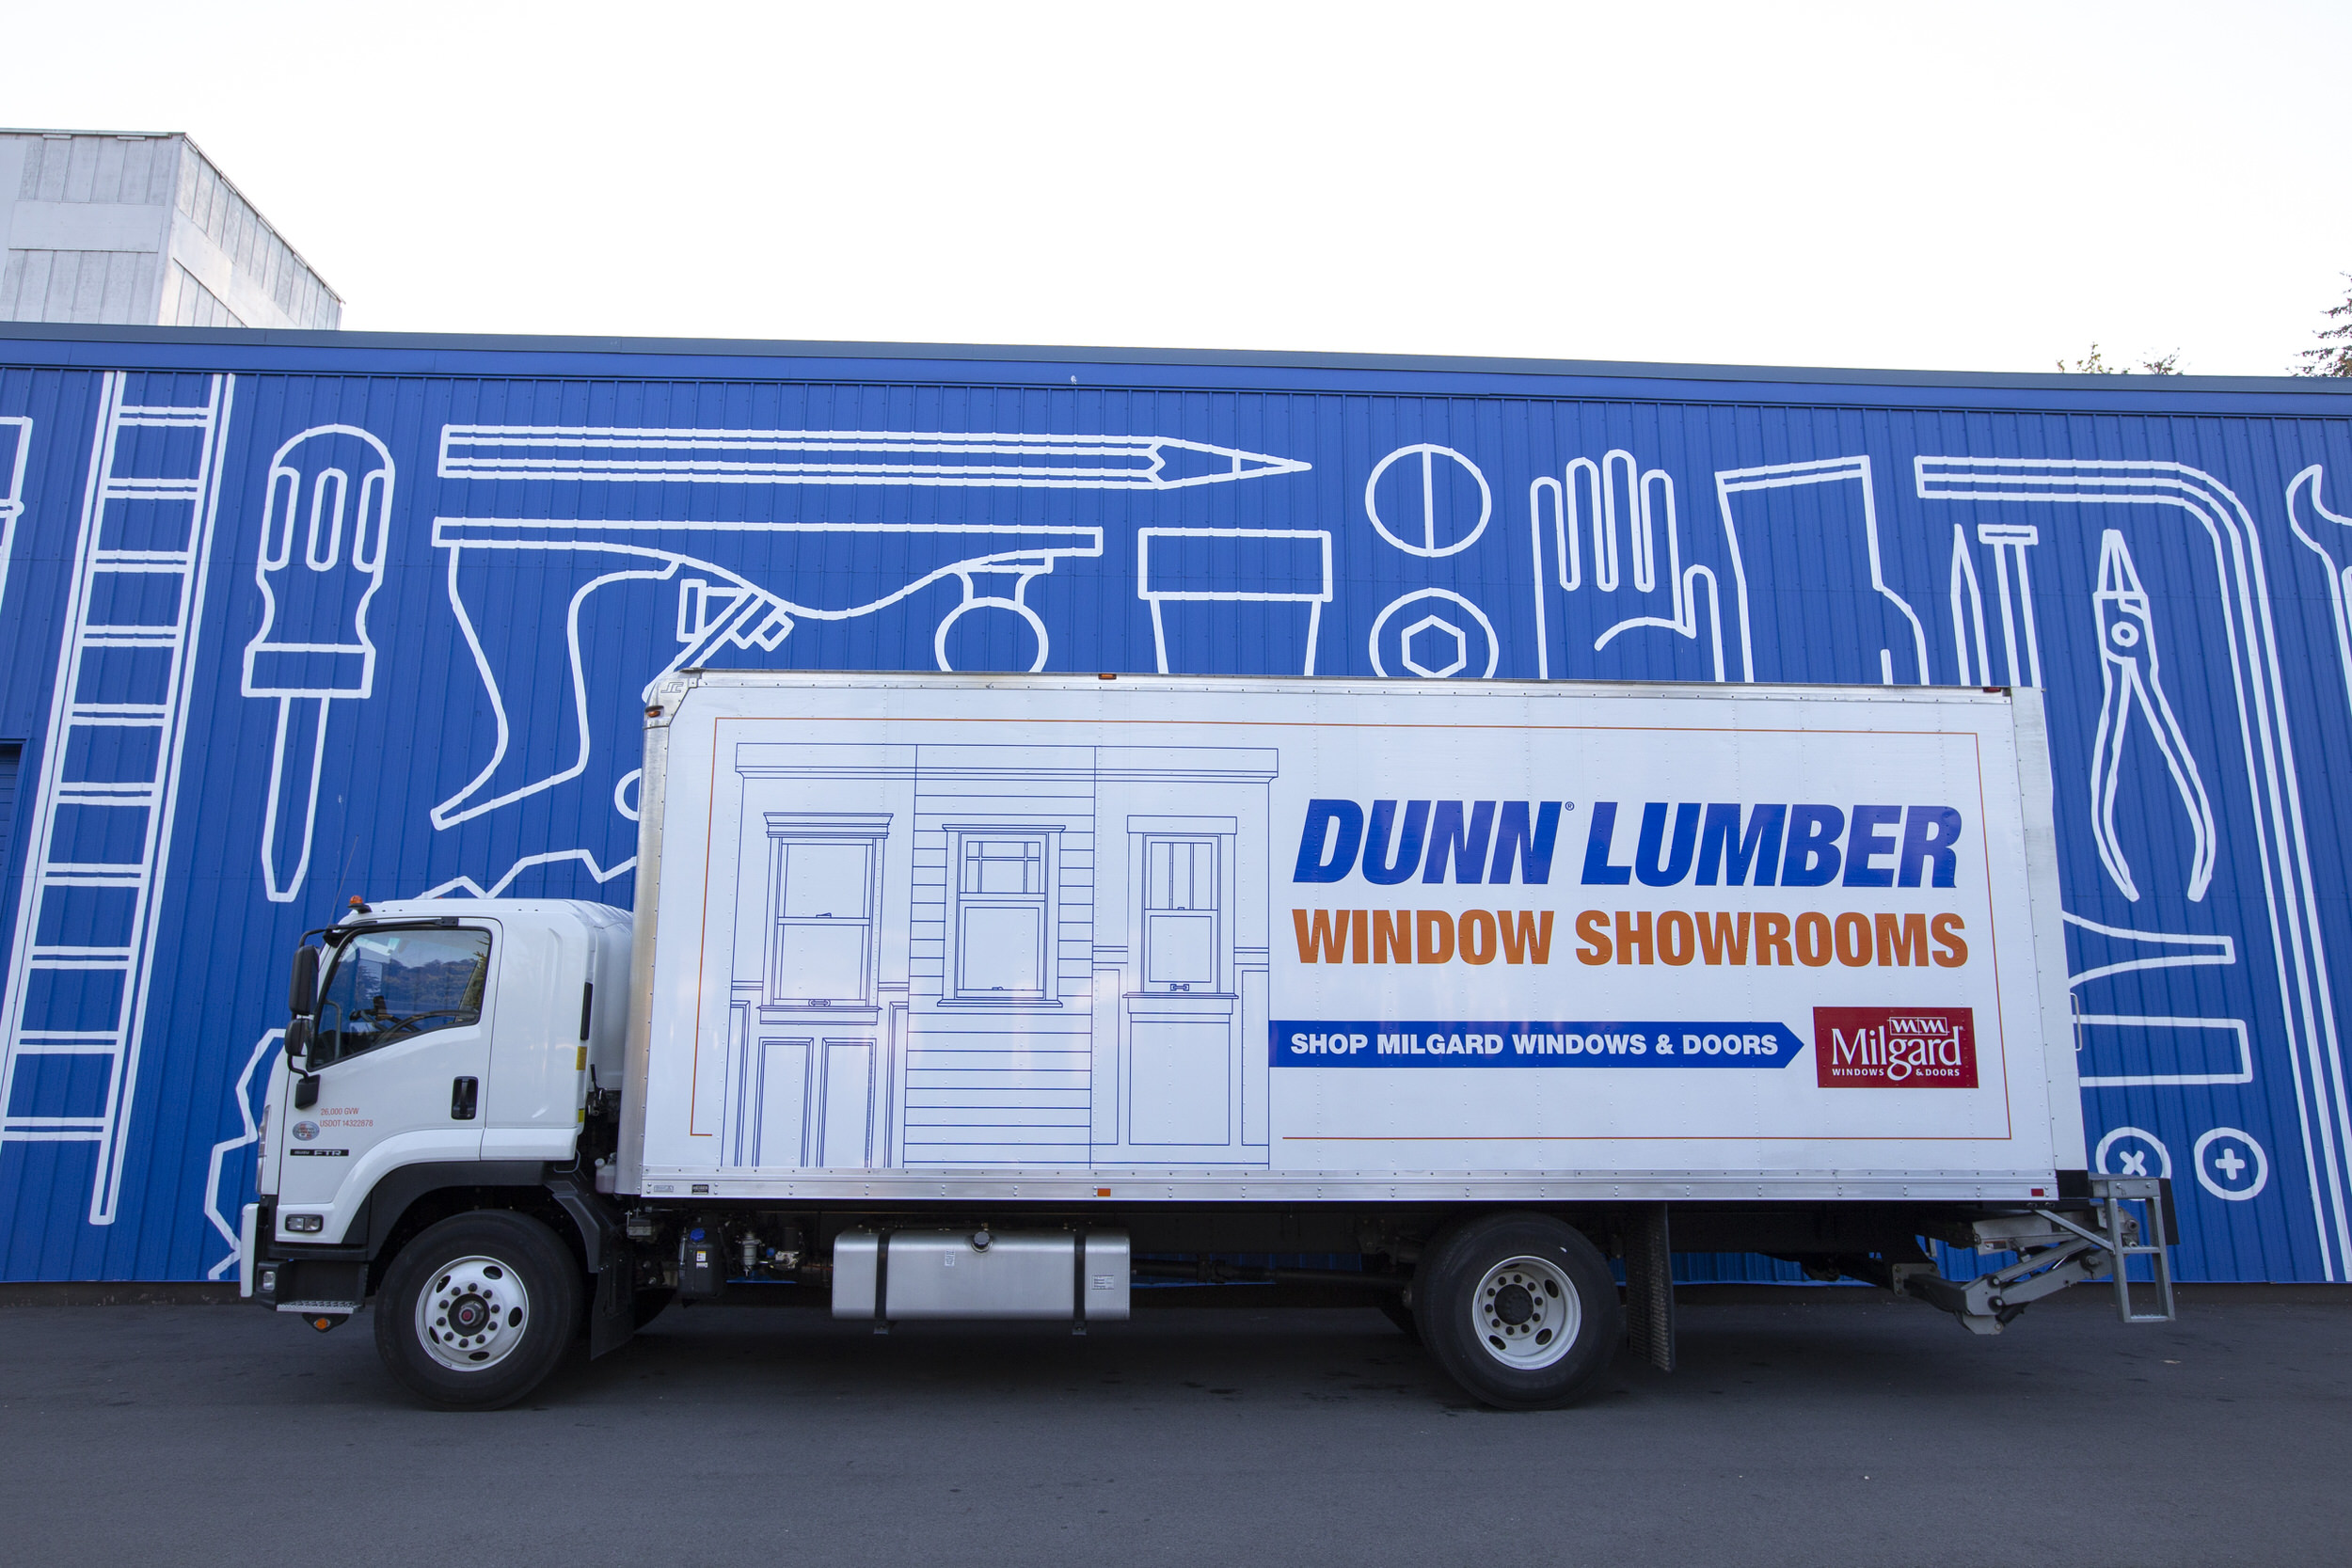 Dunn Lumber Delivery Truck for Hardware and Lumber